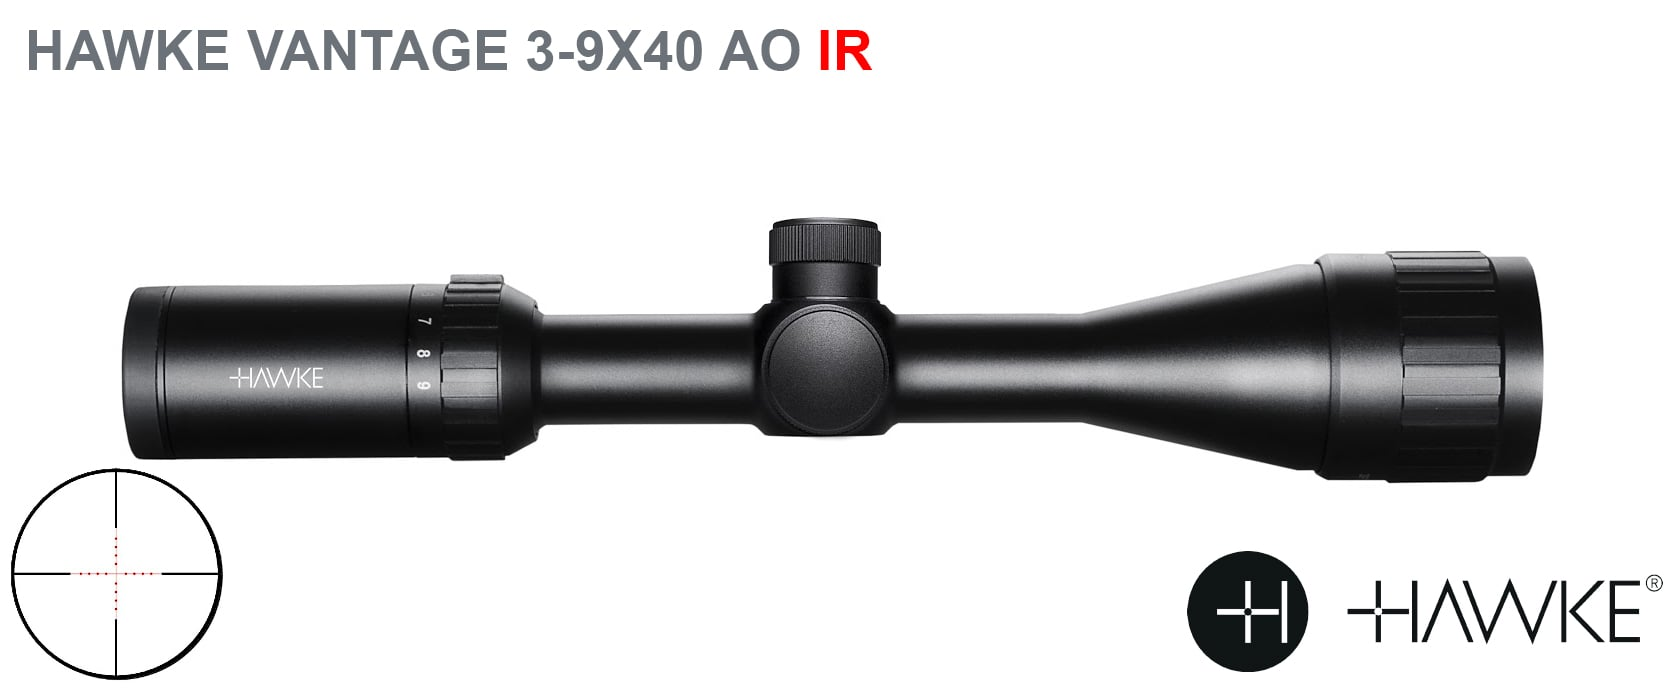 HAWKE VANTAGE 3-9X40 AO IR + 2PC HIGH MOUNTS